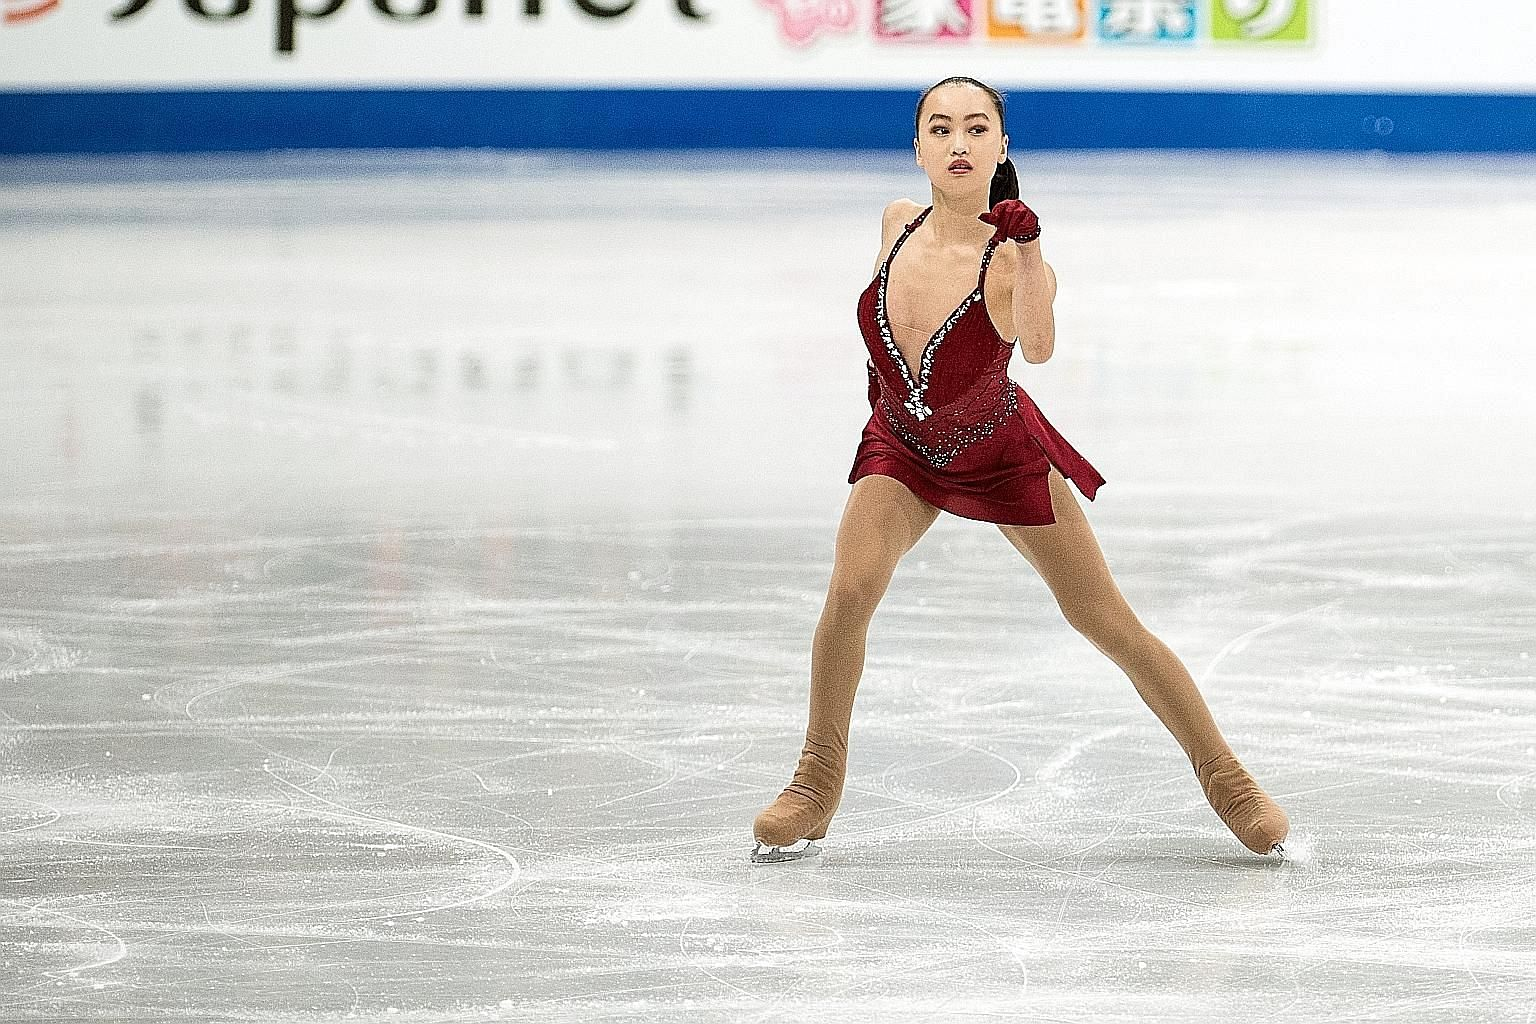 Singapore's Yu Shuran putting in a personal best performance at the World Figure Skating Championships in Helsinki.